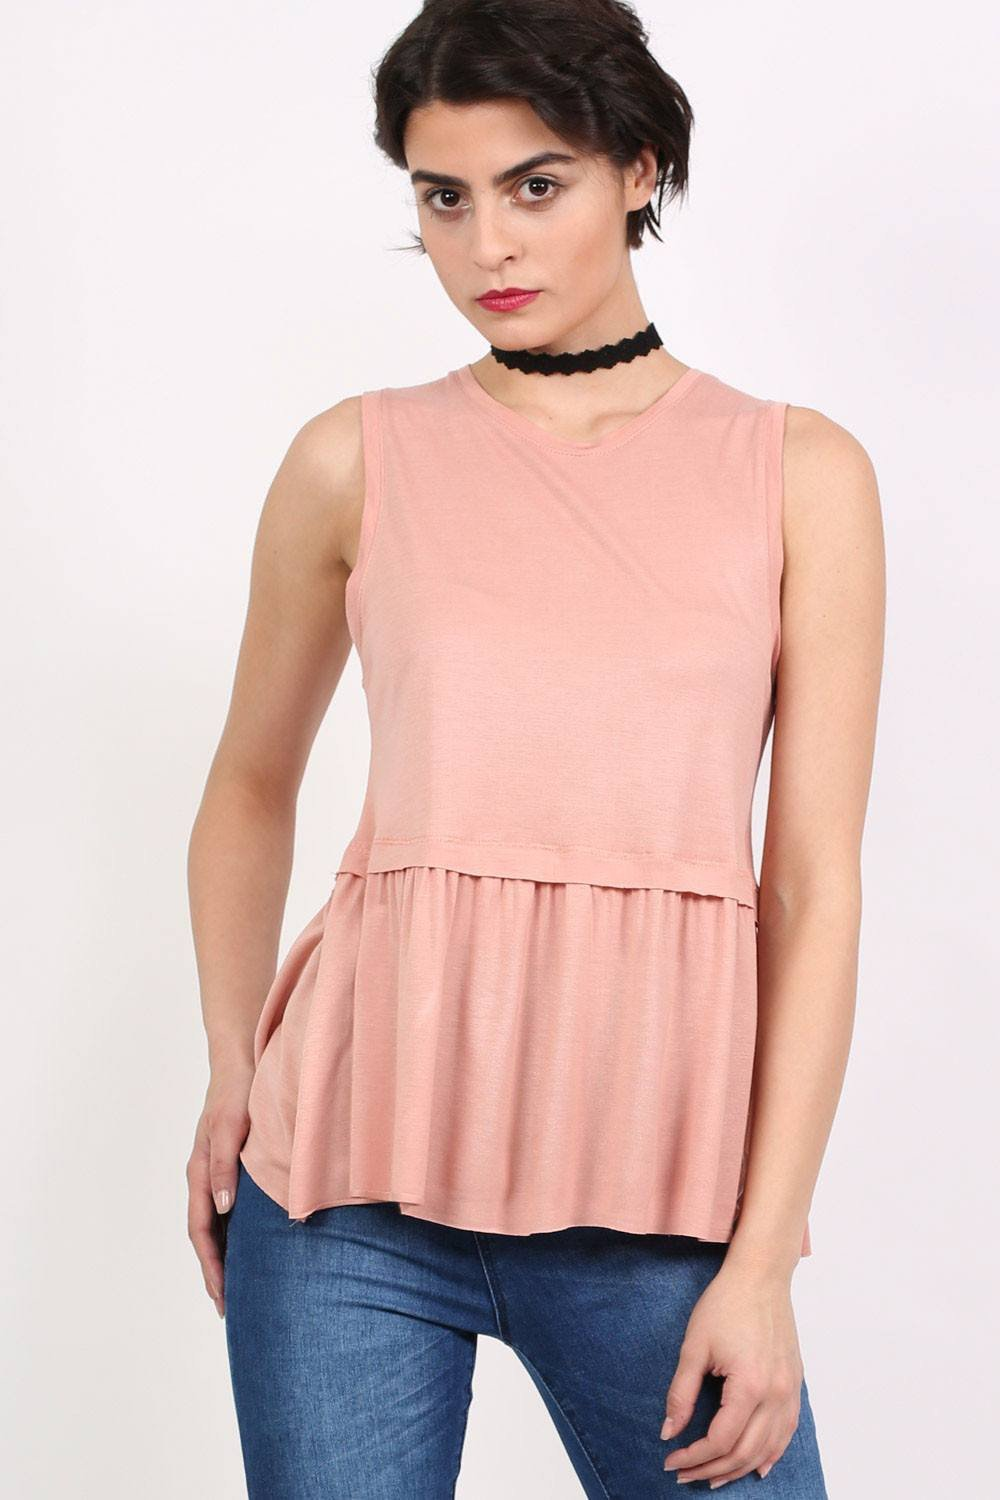 Swing Peplum Hem Vest Top in Dusty Pink 0